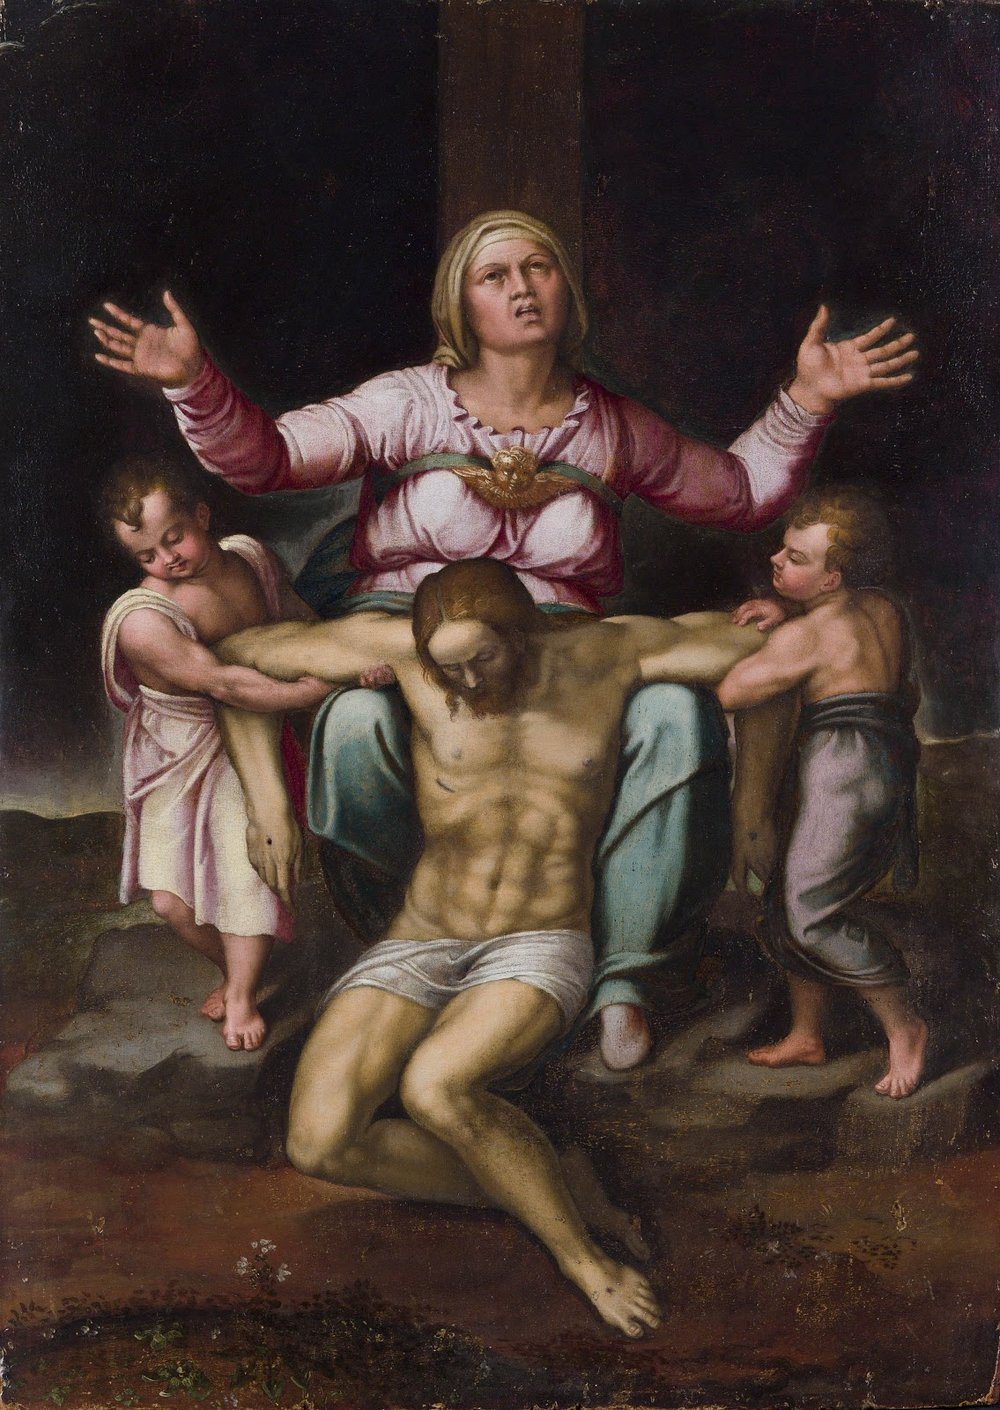 Pietà di Ragusa , School of Michelangelo (with attribution to Michelangelo himself by some scholars), 1545. Private collection